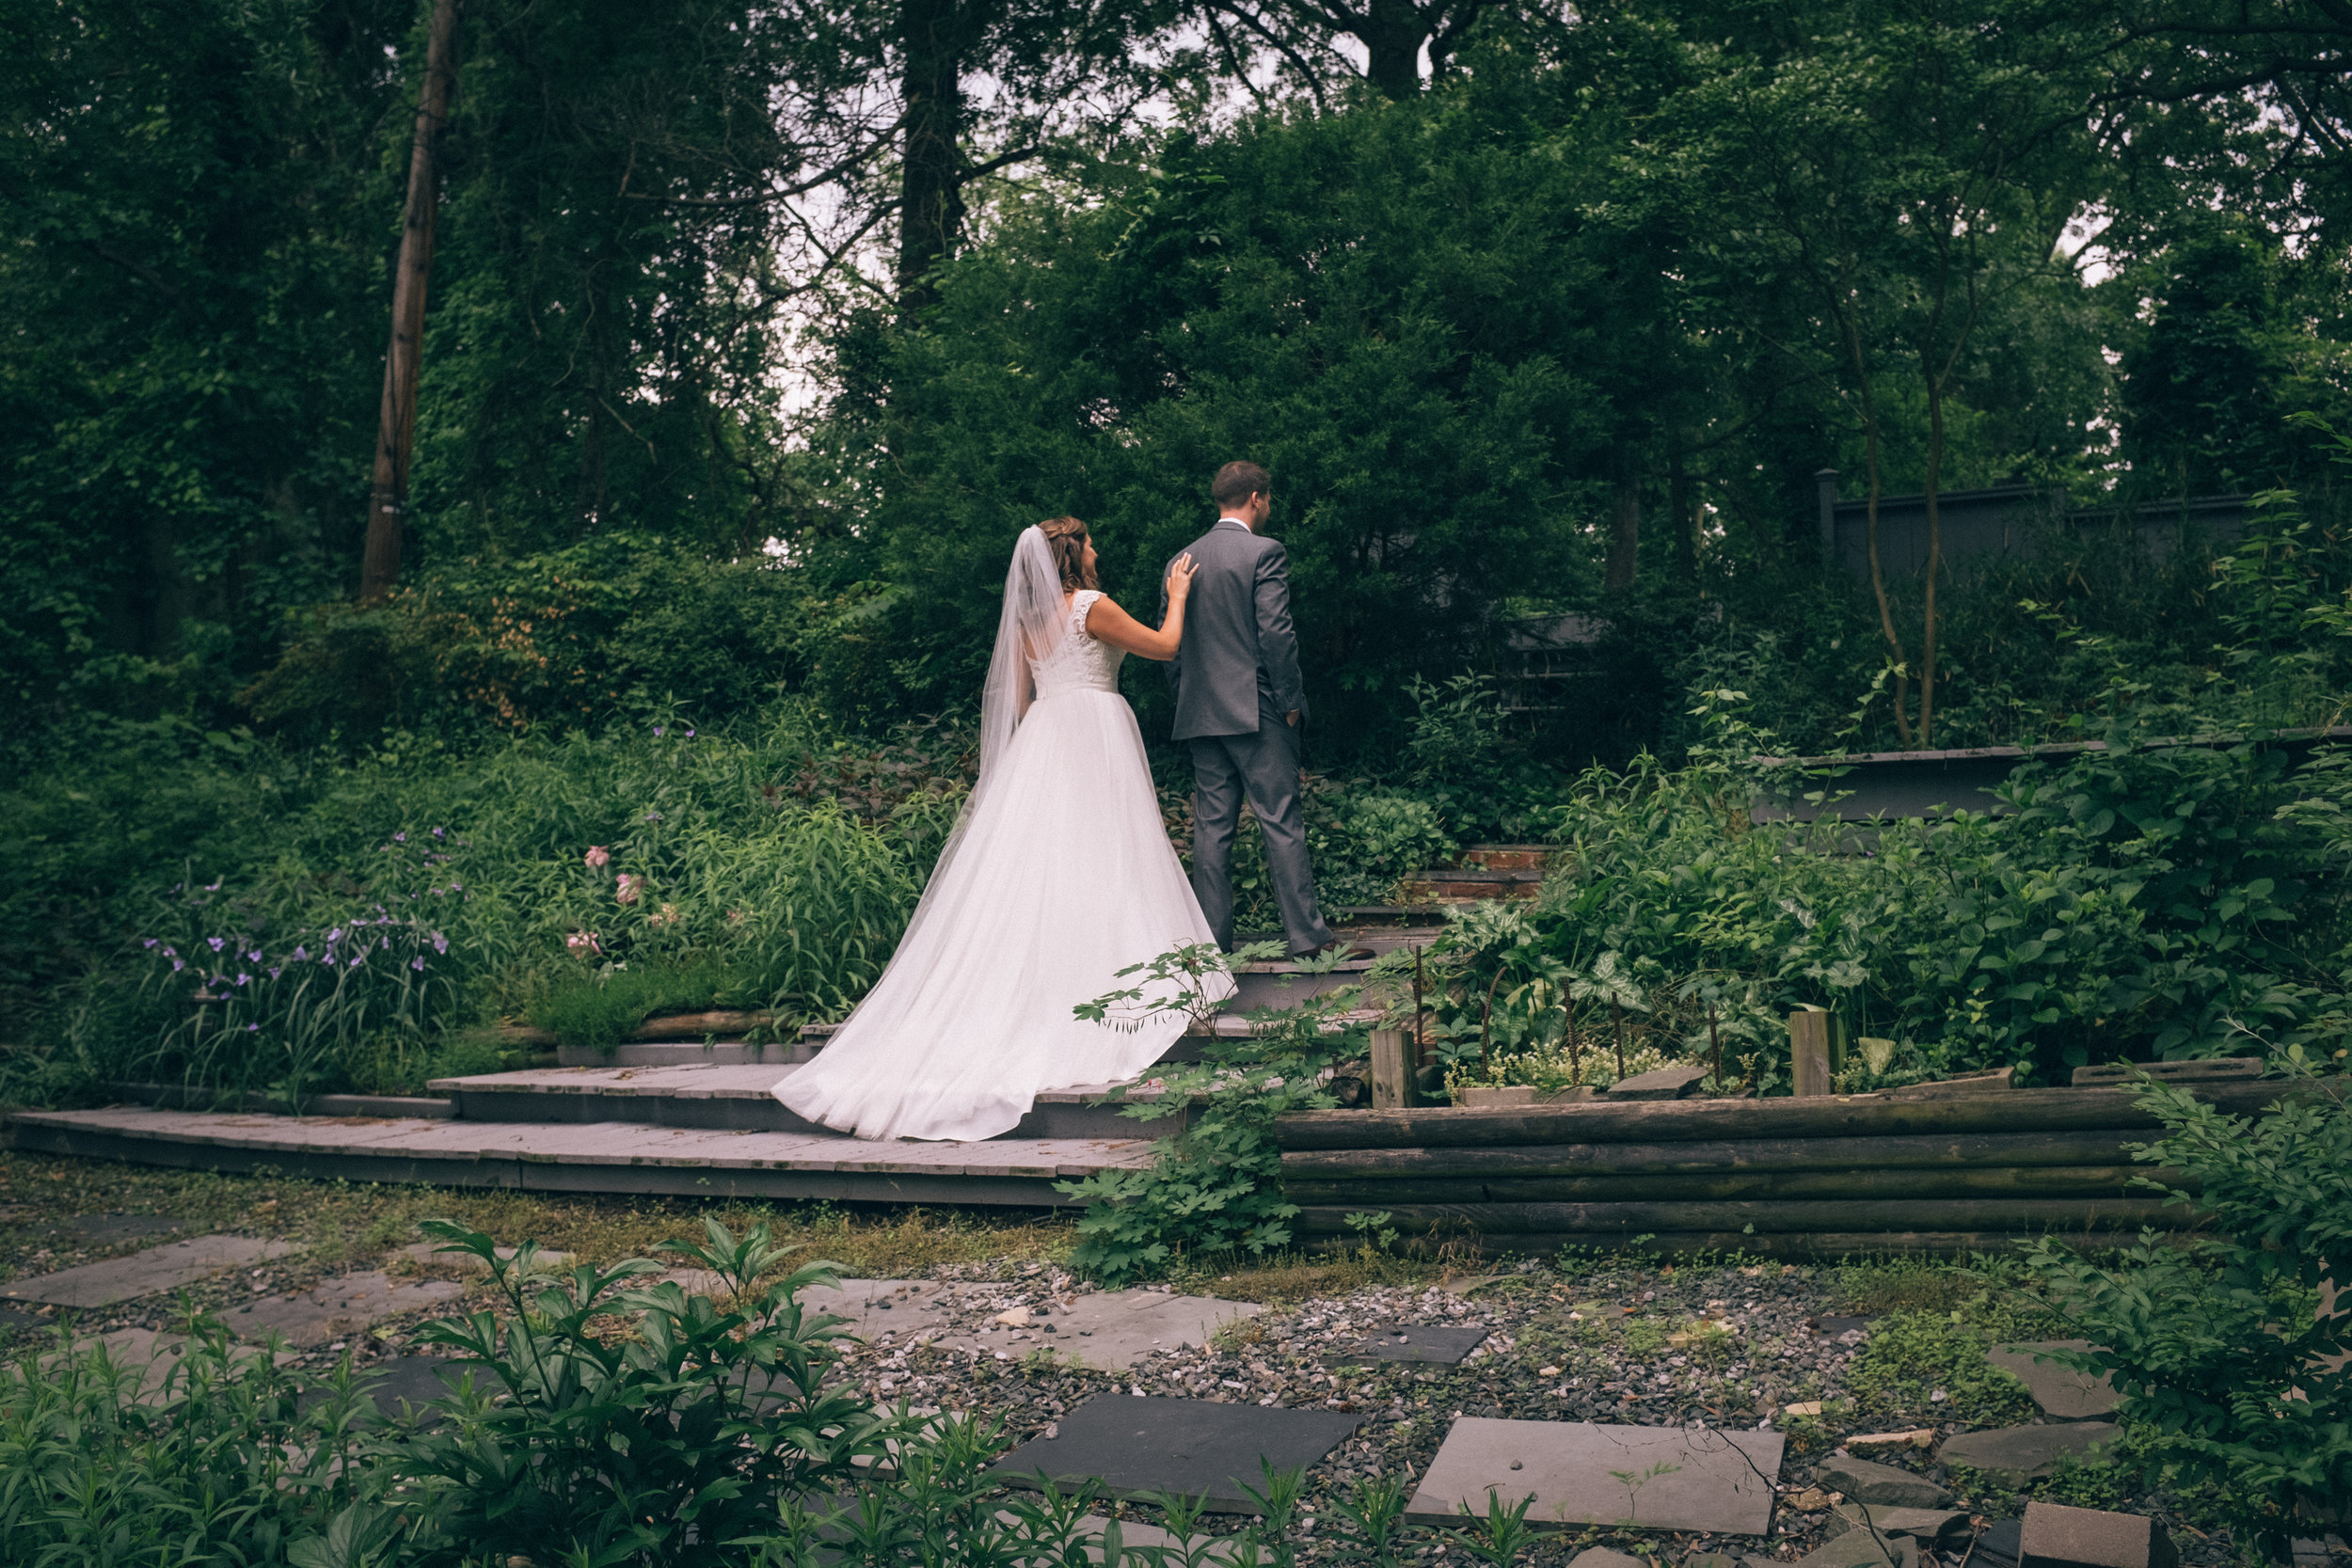 Emily & Steve - An intimate backyard wedding in Washington, D.C.